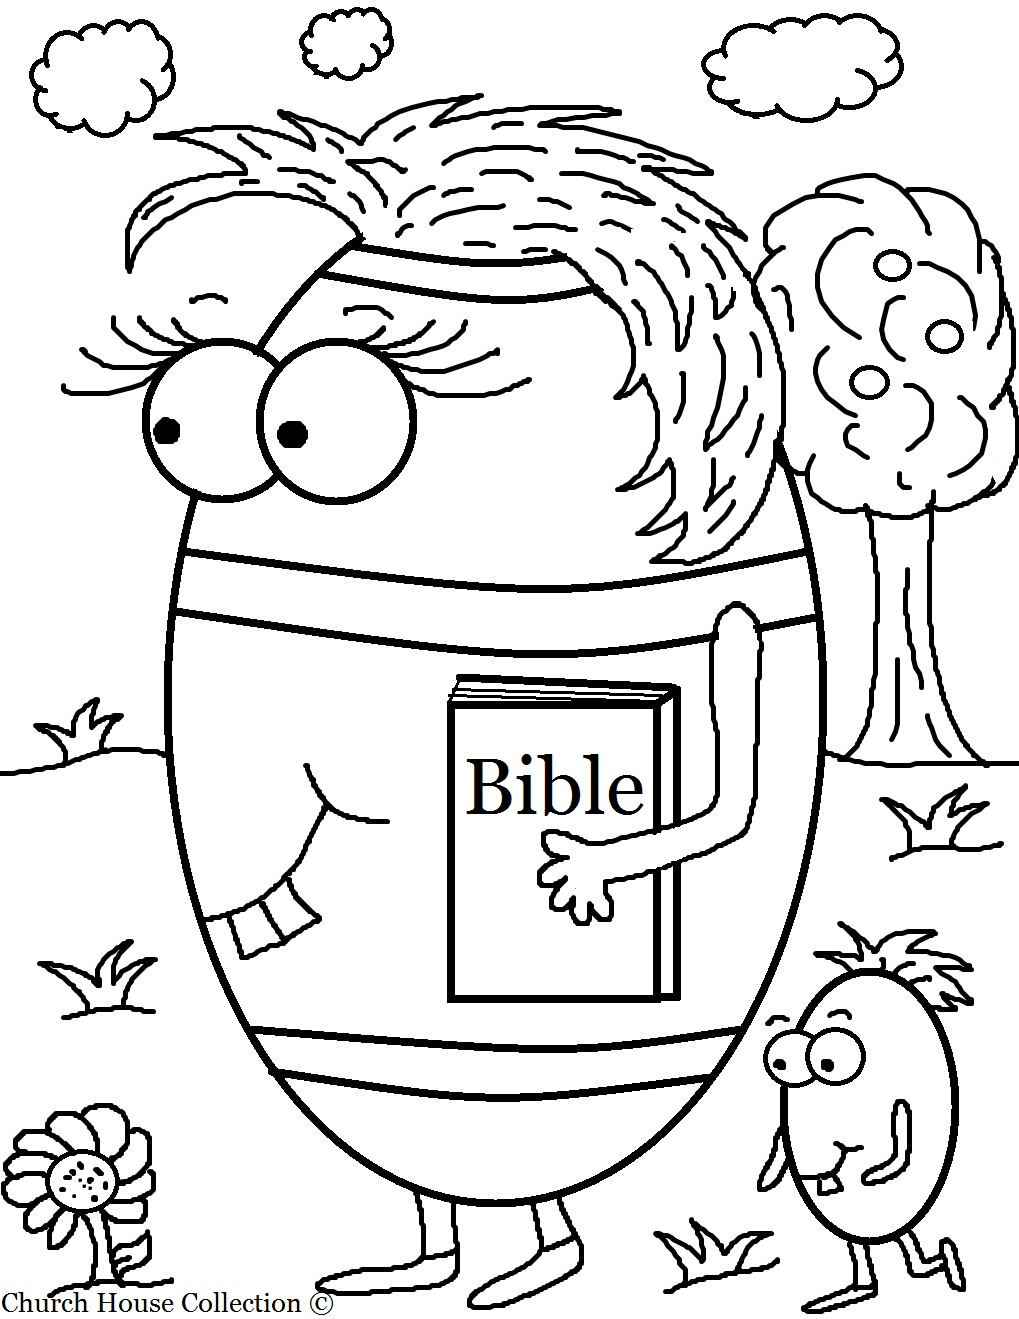 easter sunday coloring pages - photo#21